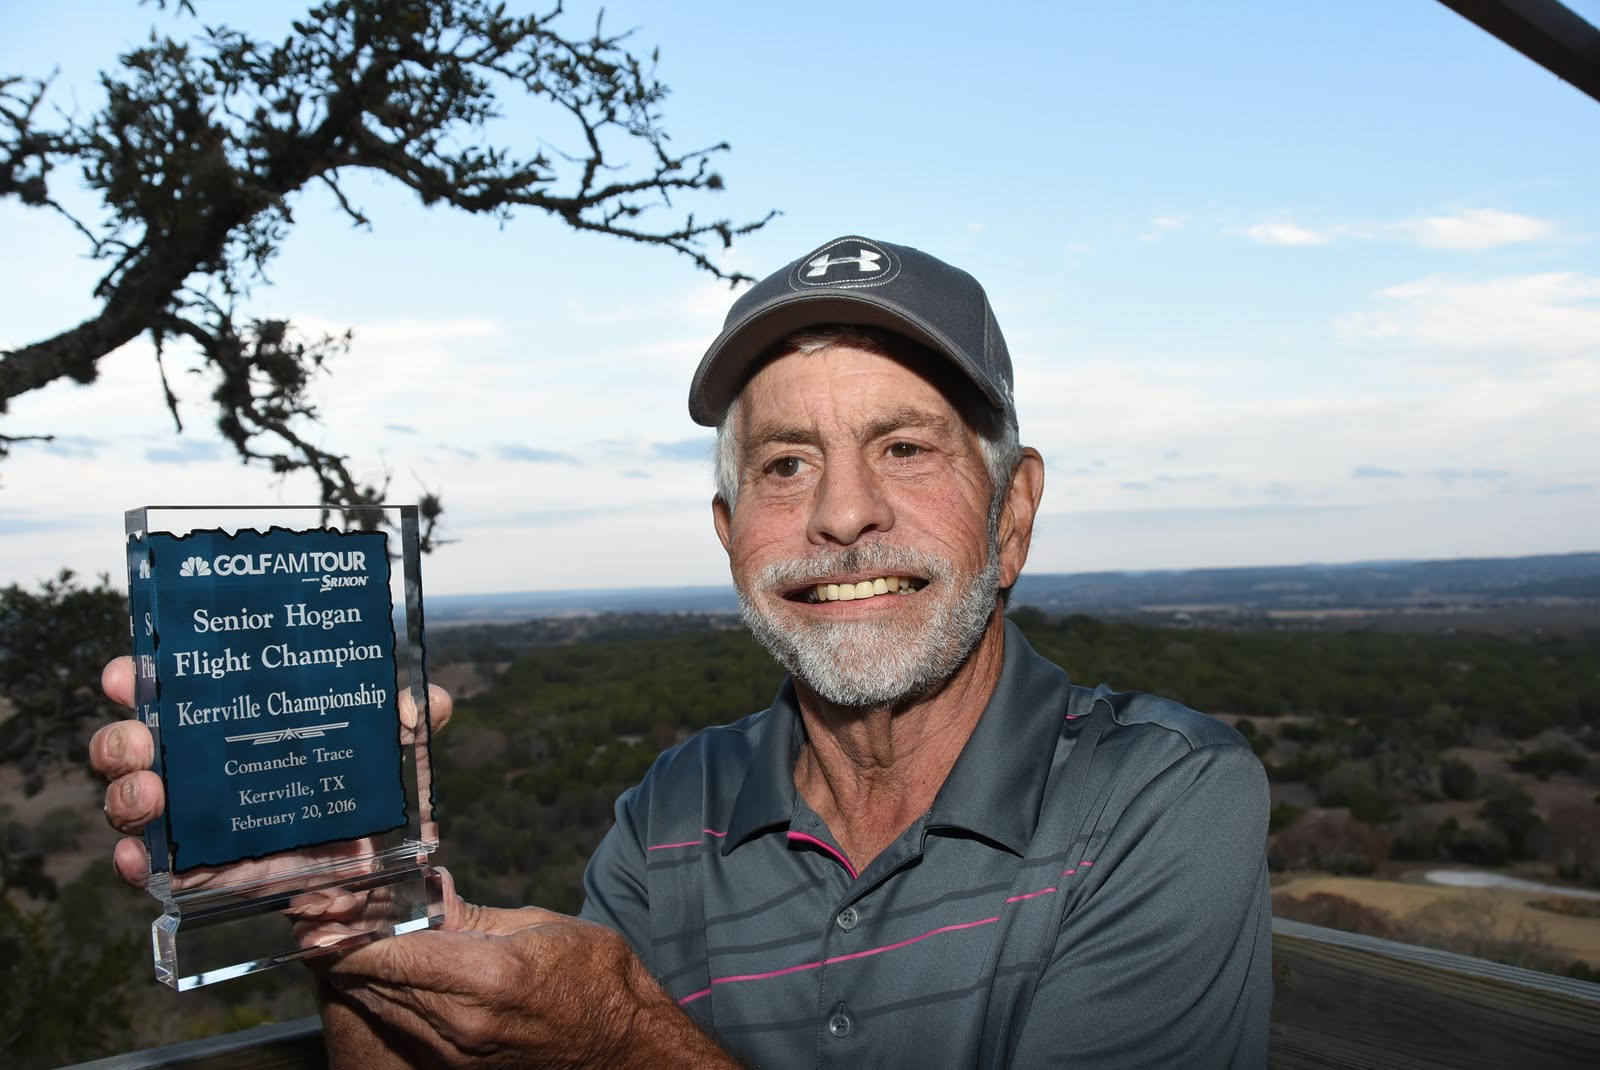 leaderboard for kerrville championship full field scores senior hogan flight wimberly tx member little john hilgers made the turn two consecutive birdies on the par 4 10th and par 4 11th to run away